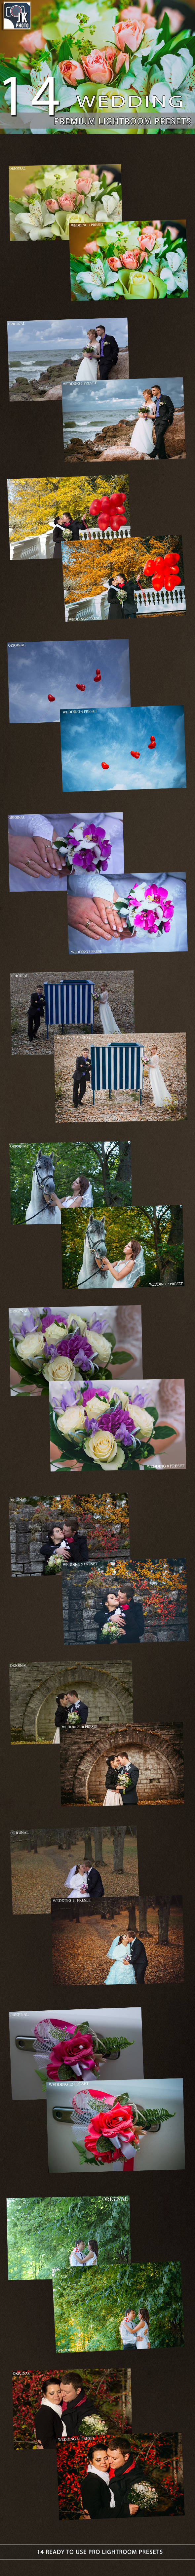 14 Wedding Lightroom Presets - Wedding Lightroom Presets